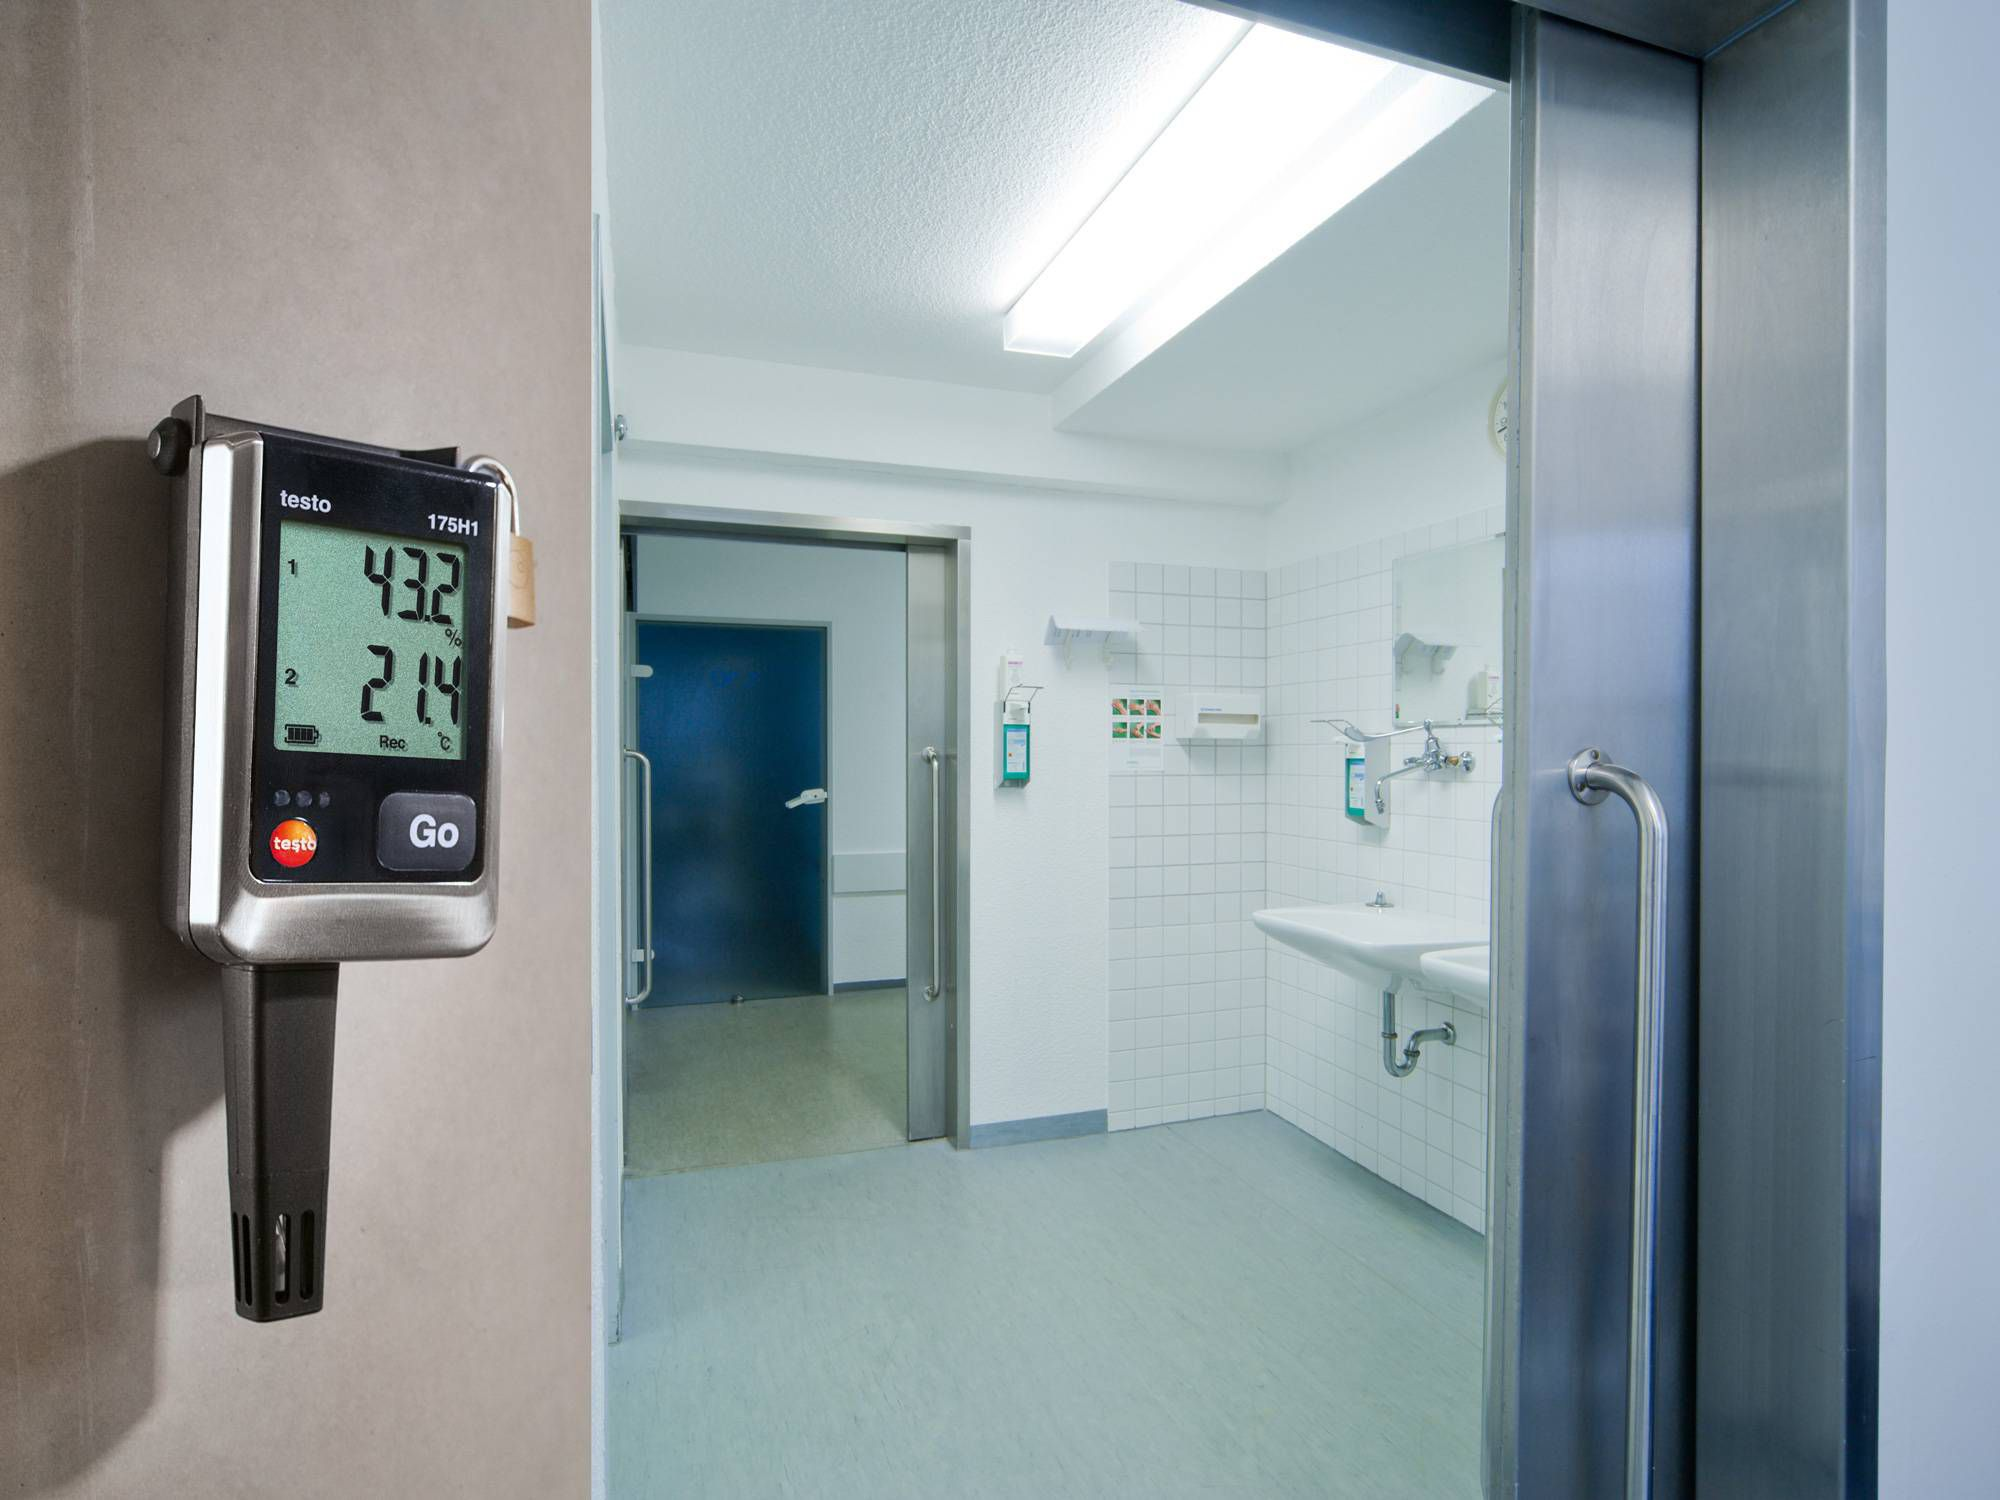 The testo 175 H1 data logger monitors temperature and humidity in an operating theatre